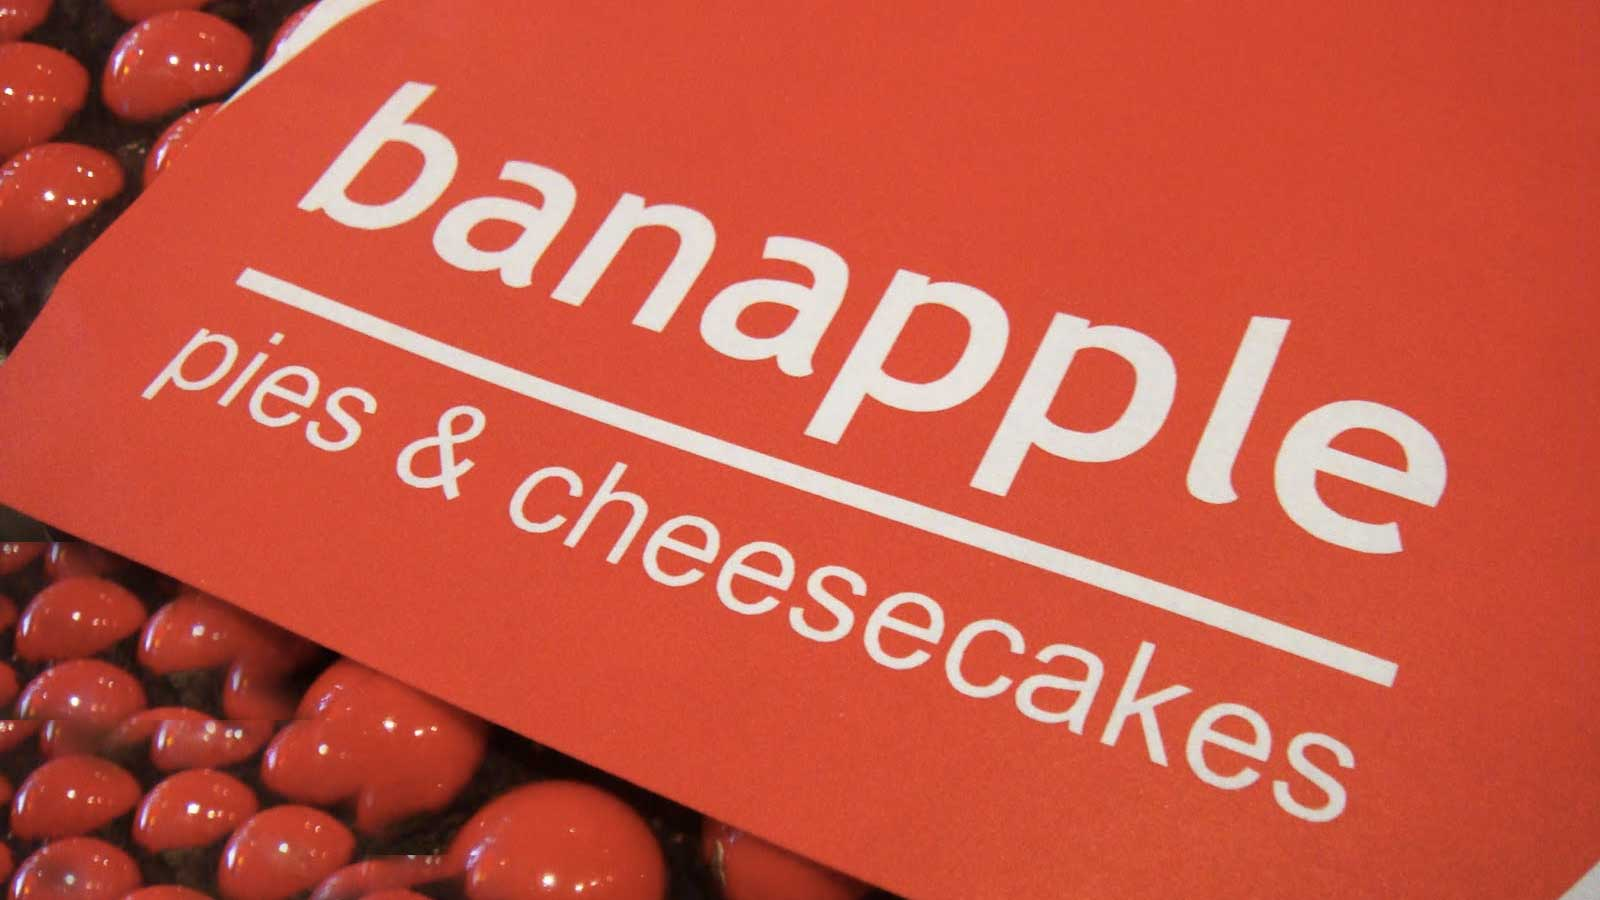 Banapple bliss!